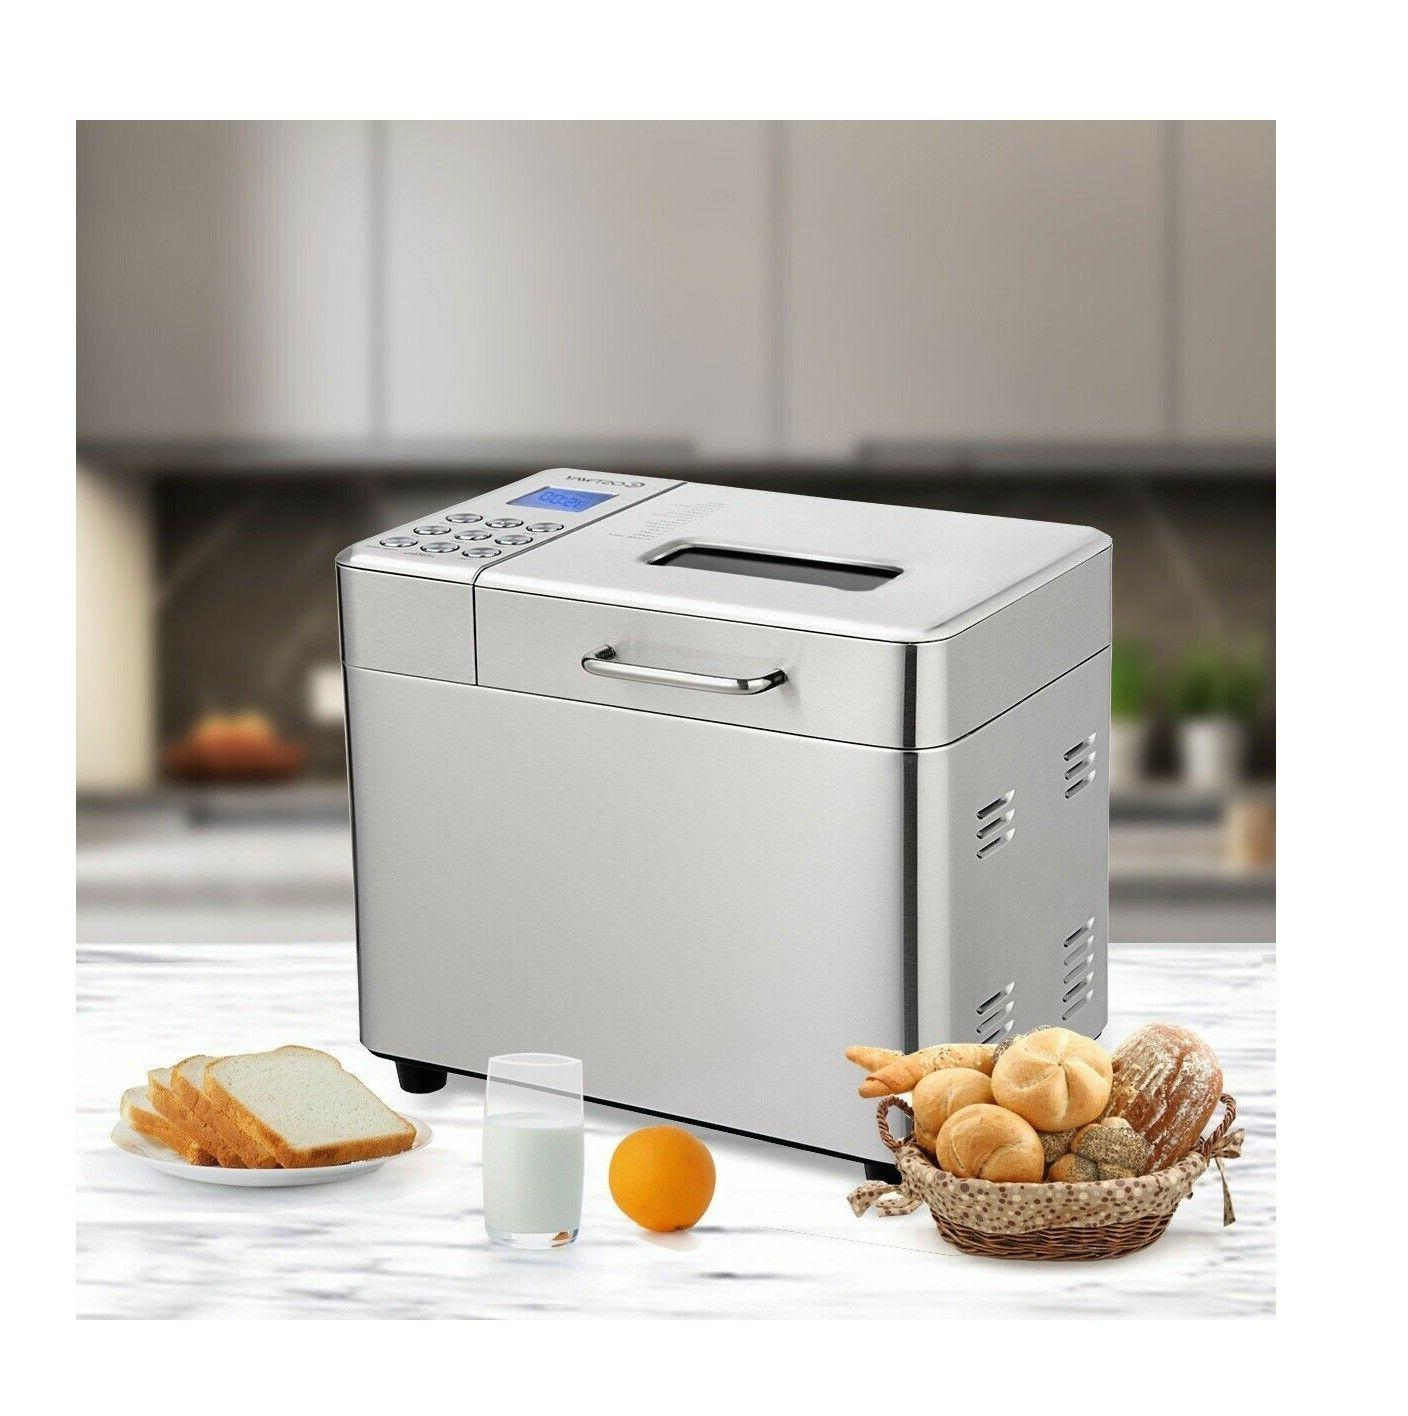 automatic bread maker stainless steel programmable 2lb